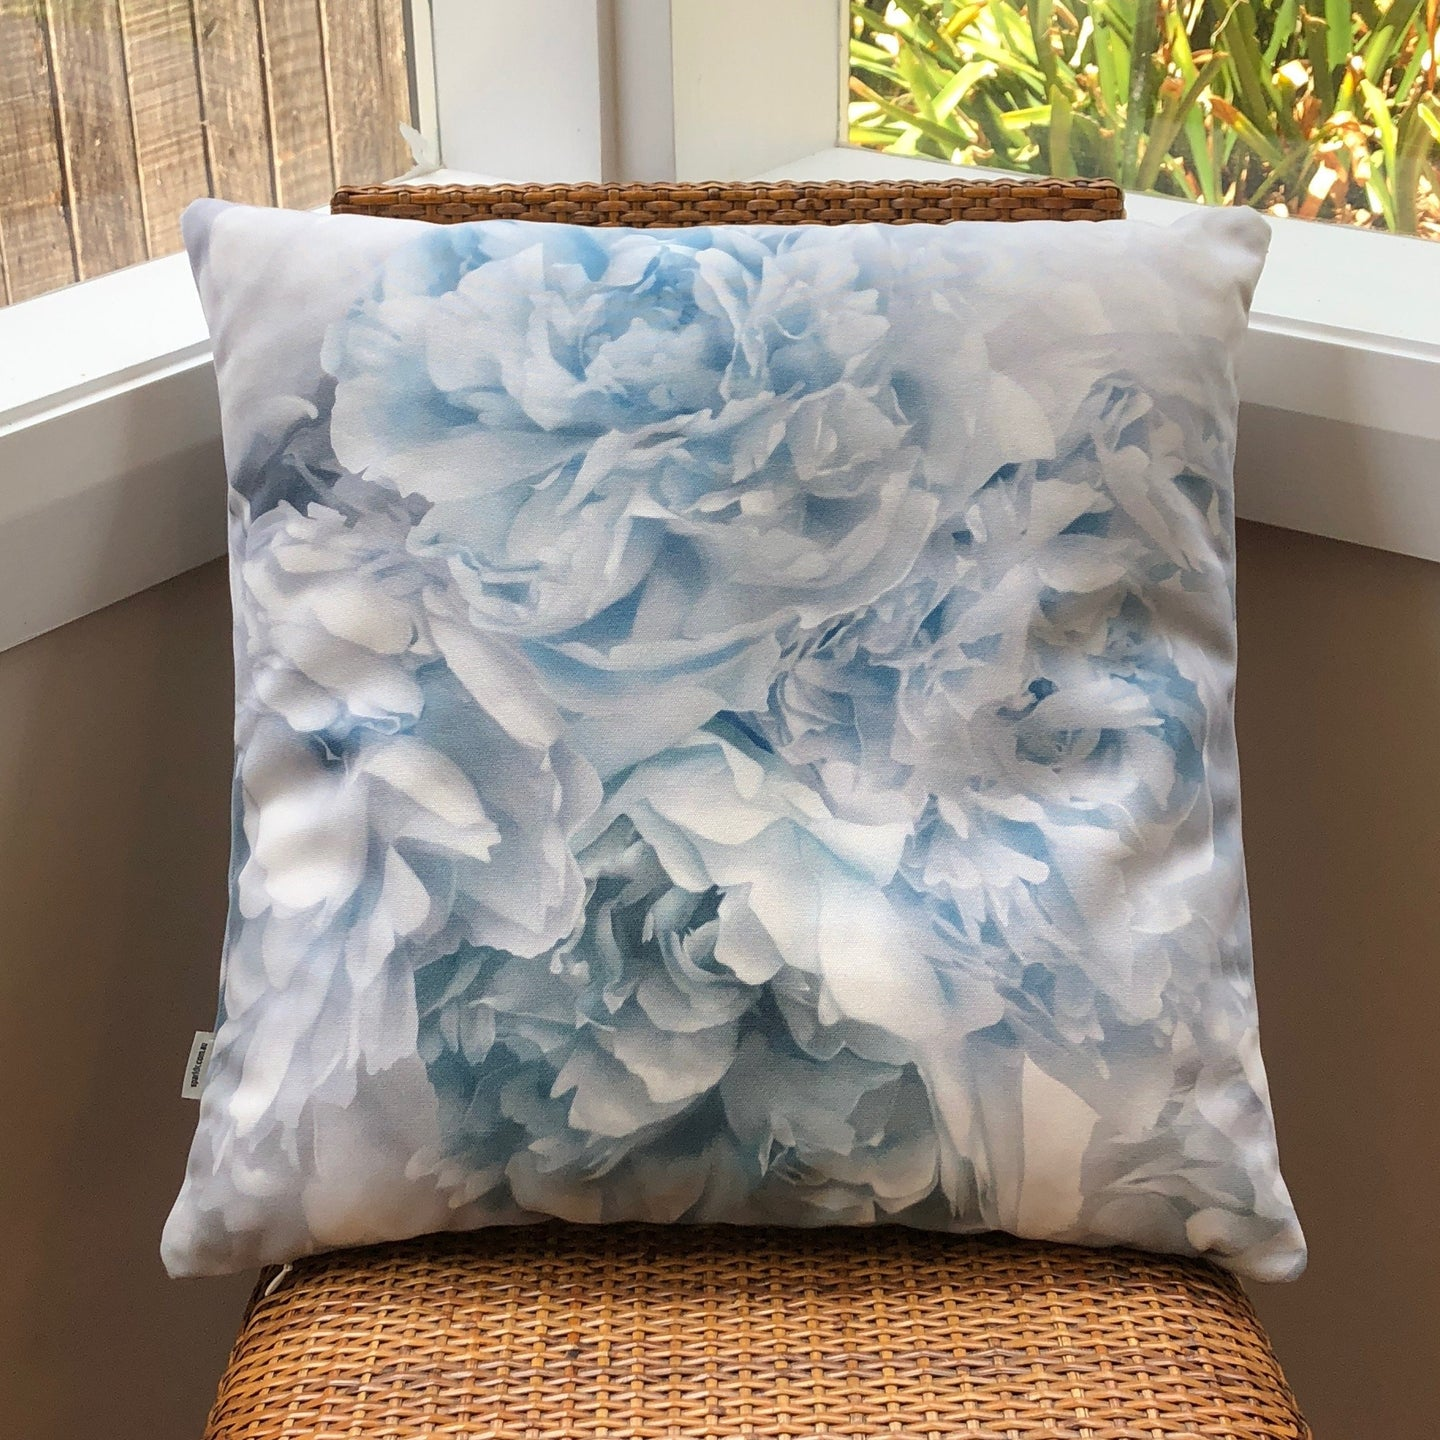 Aqua Peony Cushion by Flying Dutchman Walls